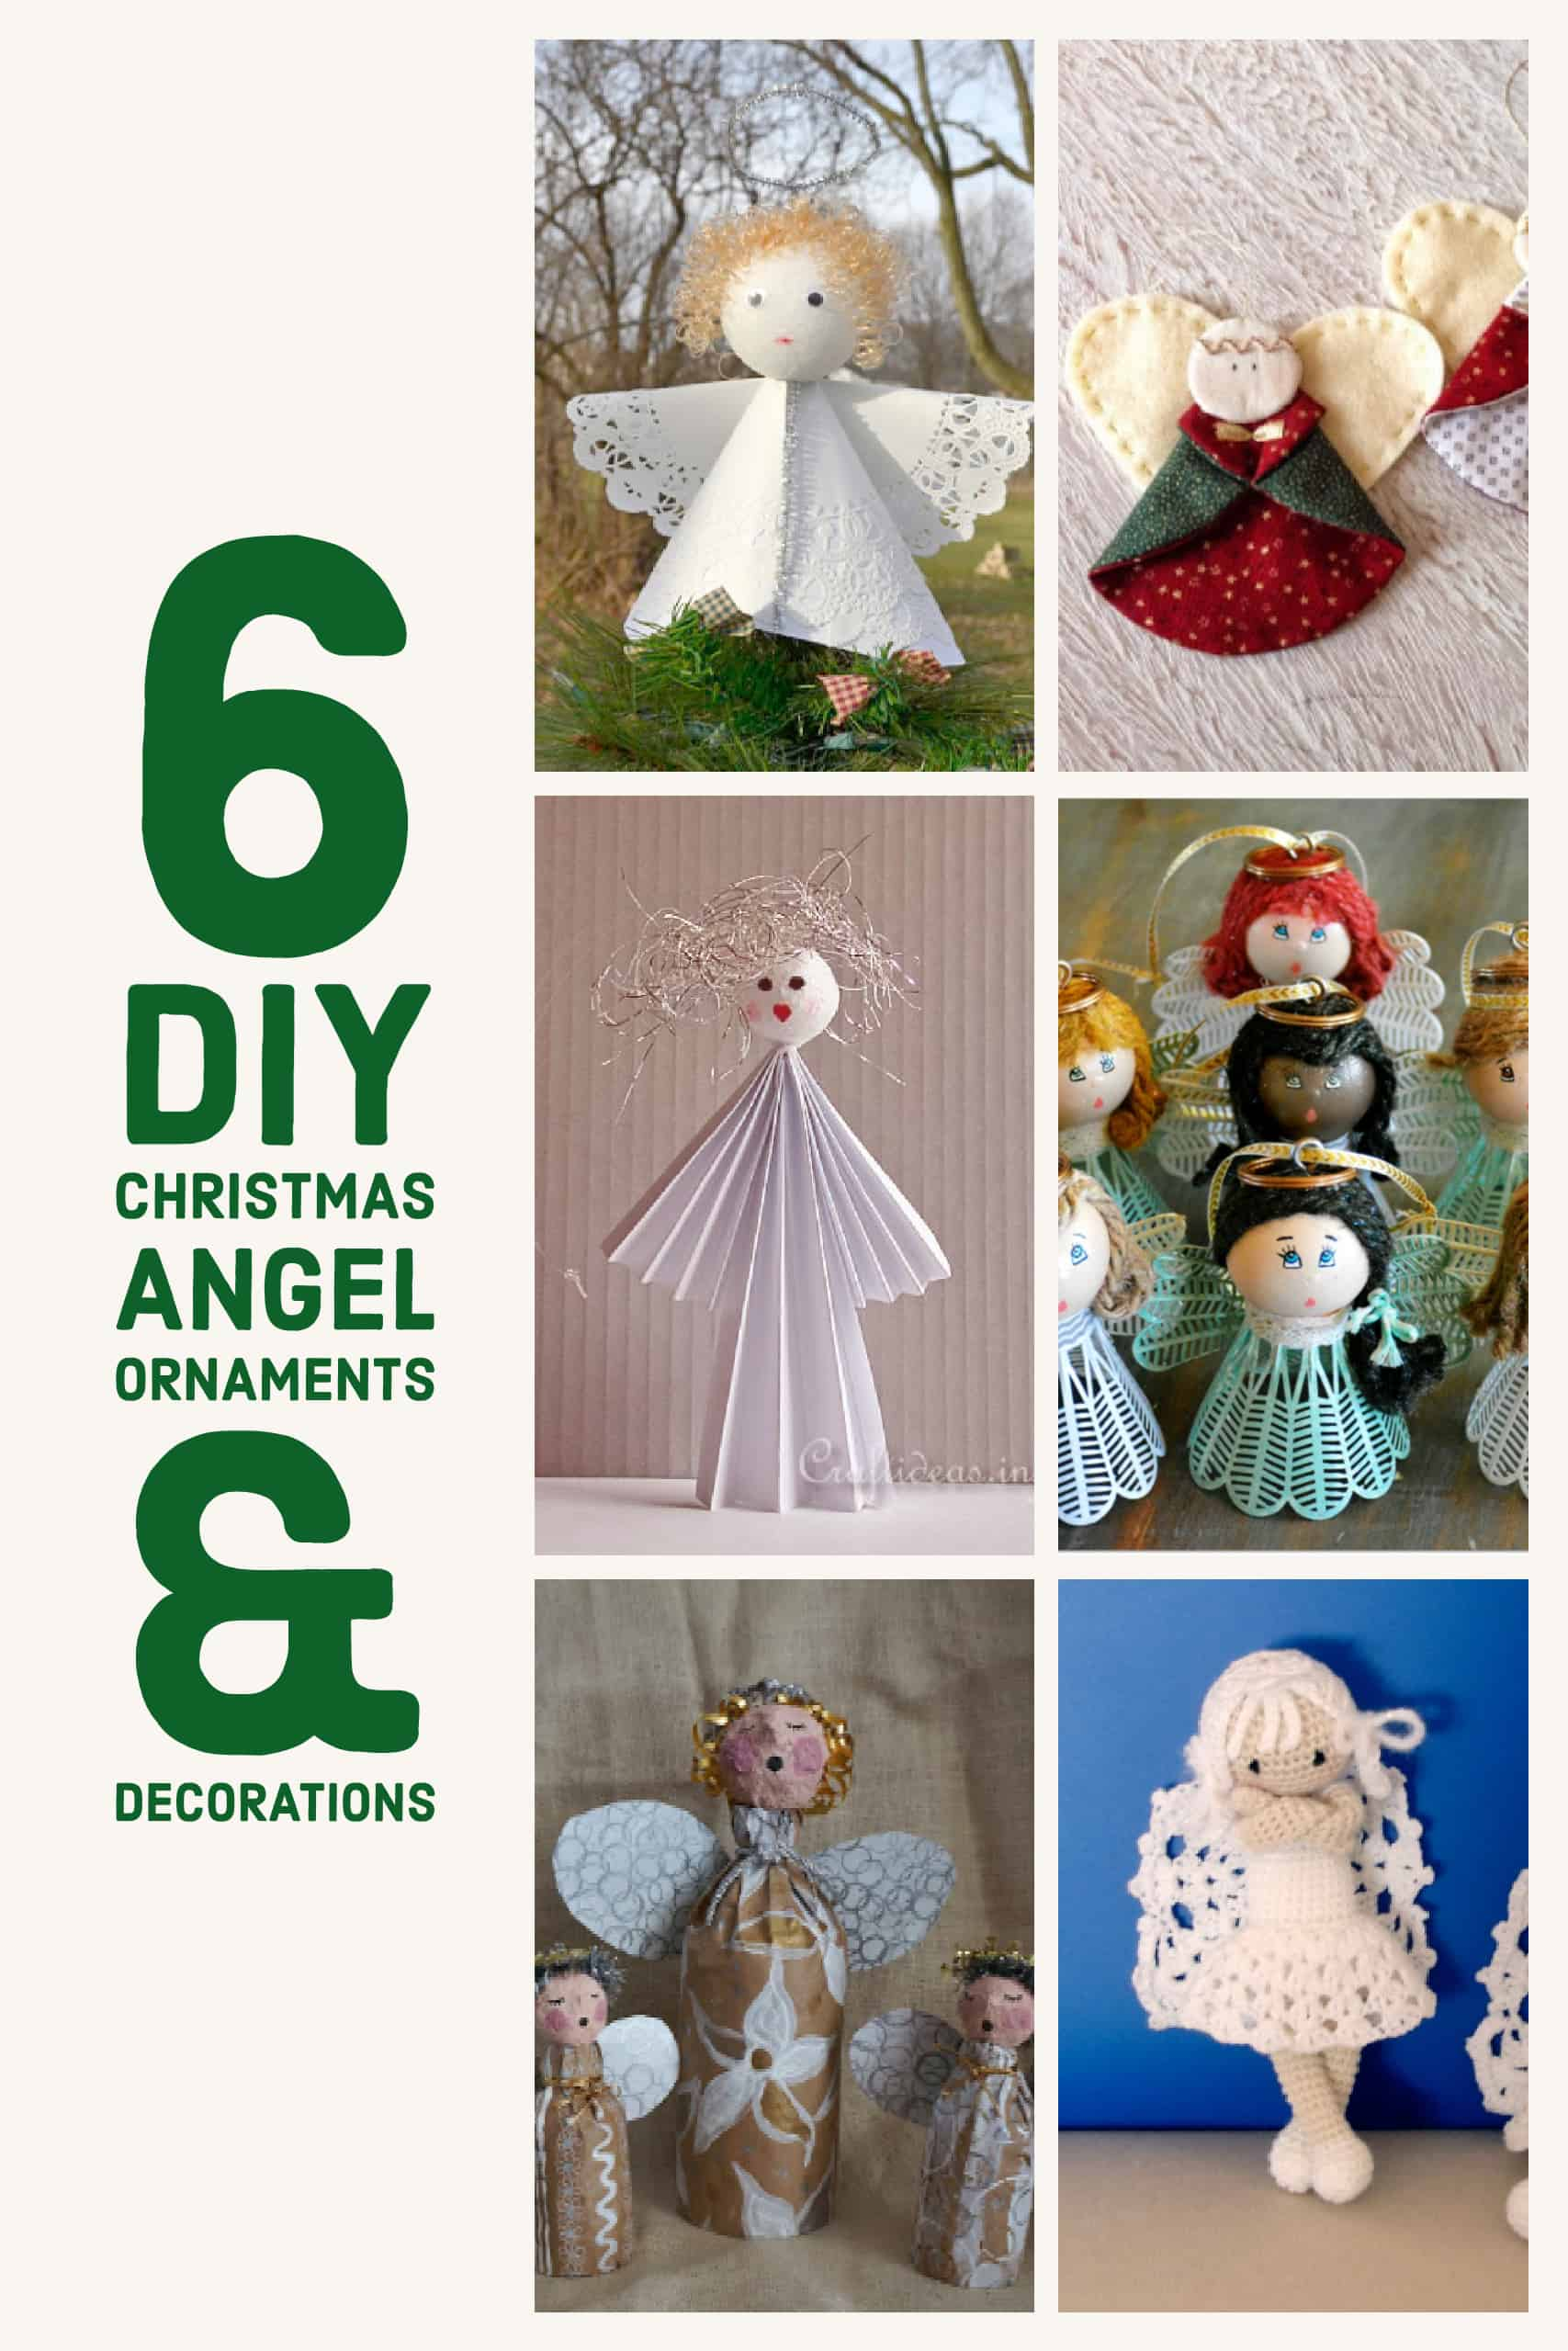 Diy Christmas Angels Ornaments.6 Diy Christmas Angel Ornaments Decorations Diy Thought